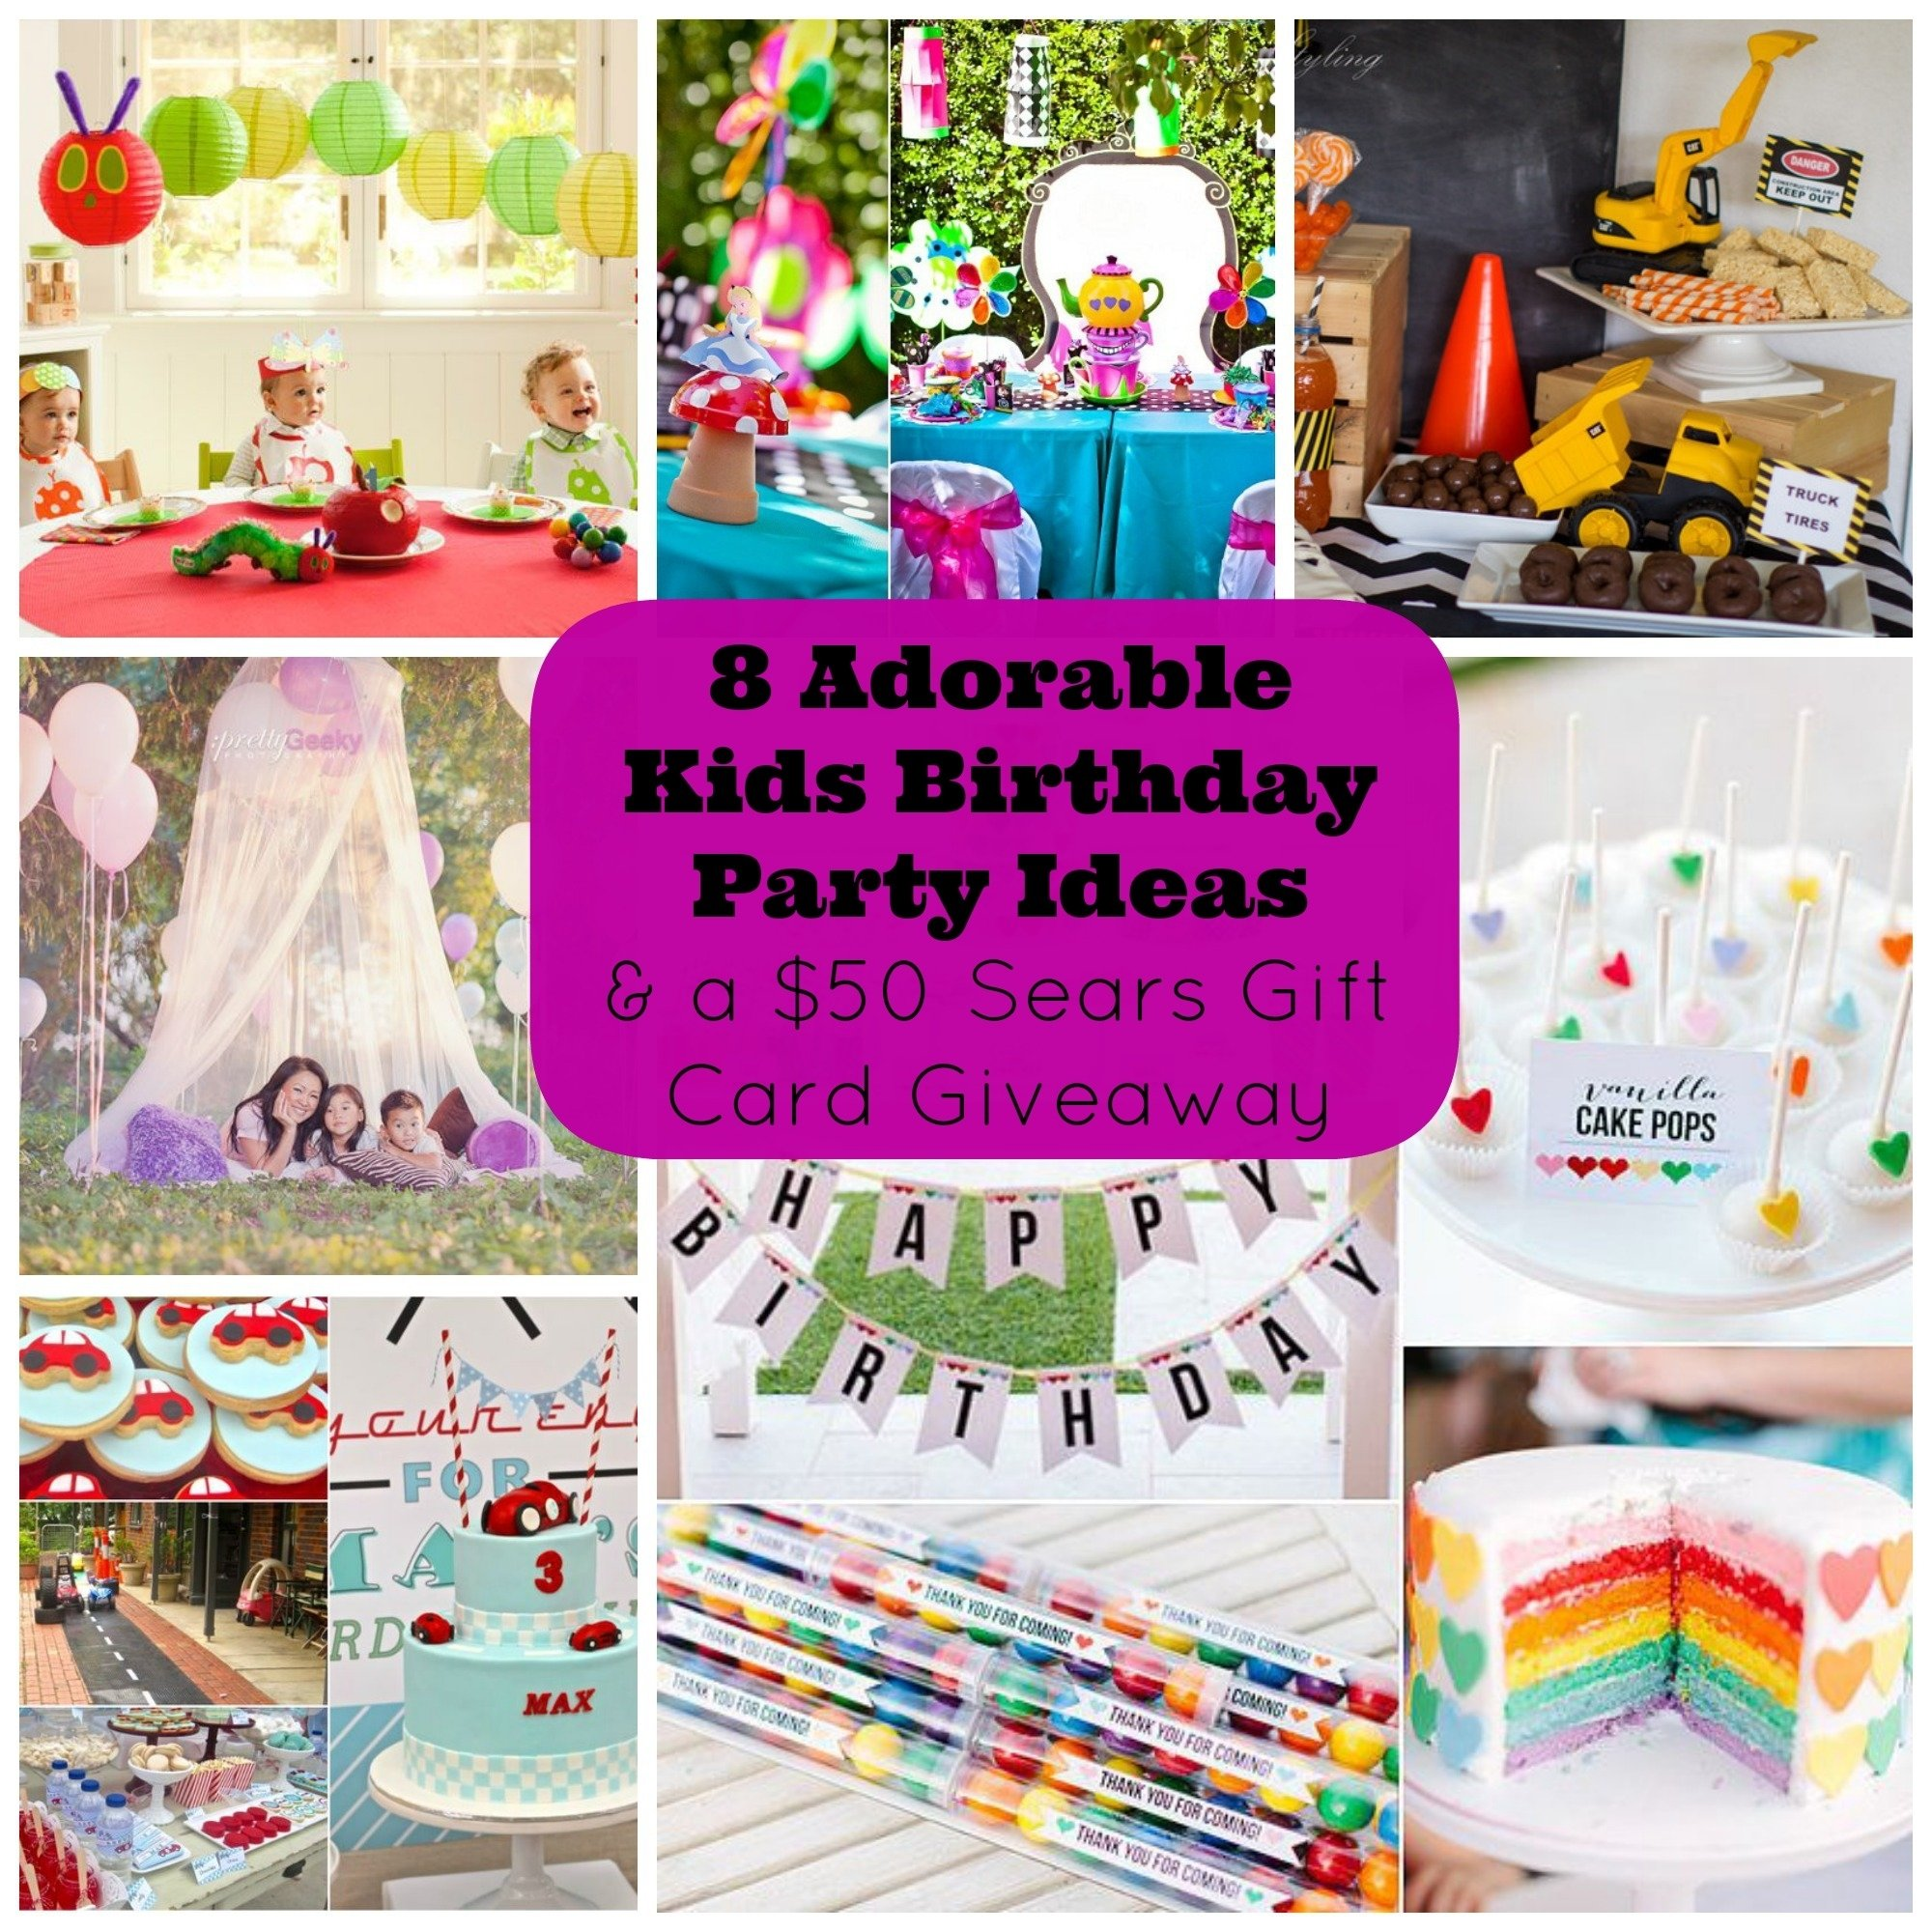 10 Wonderful Birthday Gift Ideas For Kids 8 adorable kids birthday party ideas and a giveaway for a 50 sears 2020